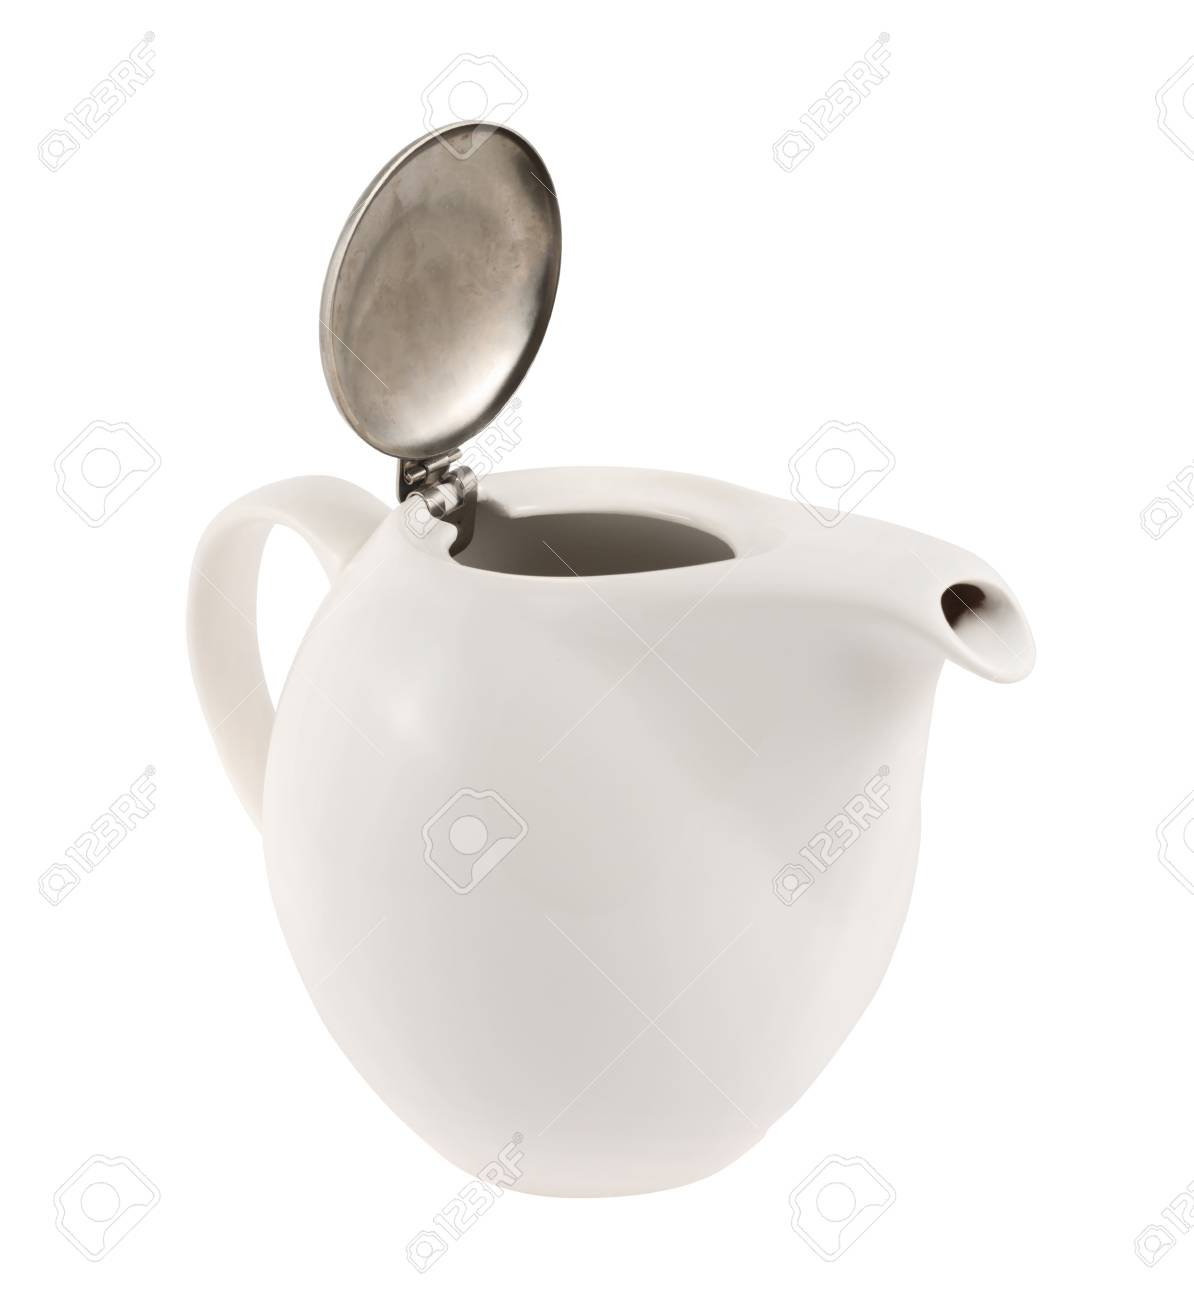 Ceramic teapot with a metallic cover lid isolated over white background Stock Photo - 20225755